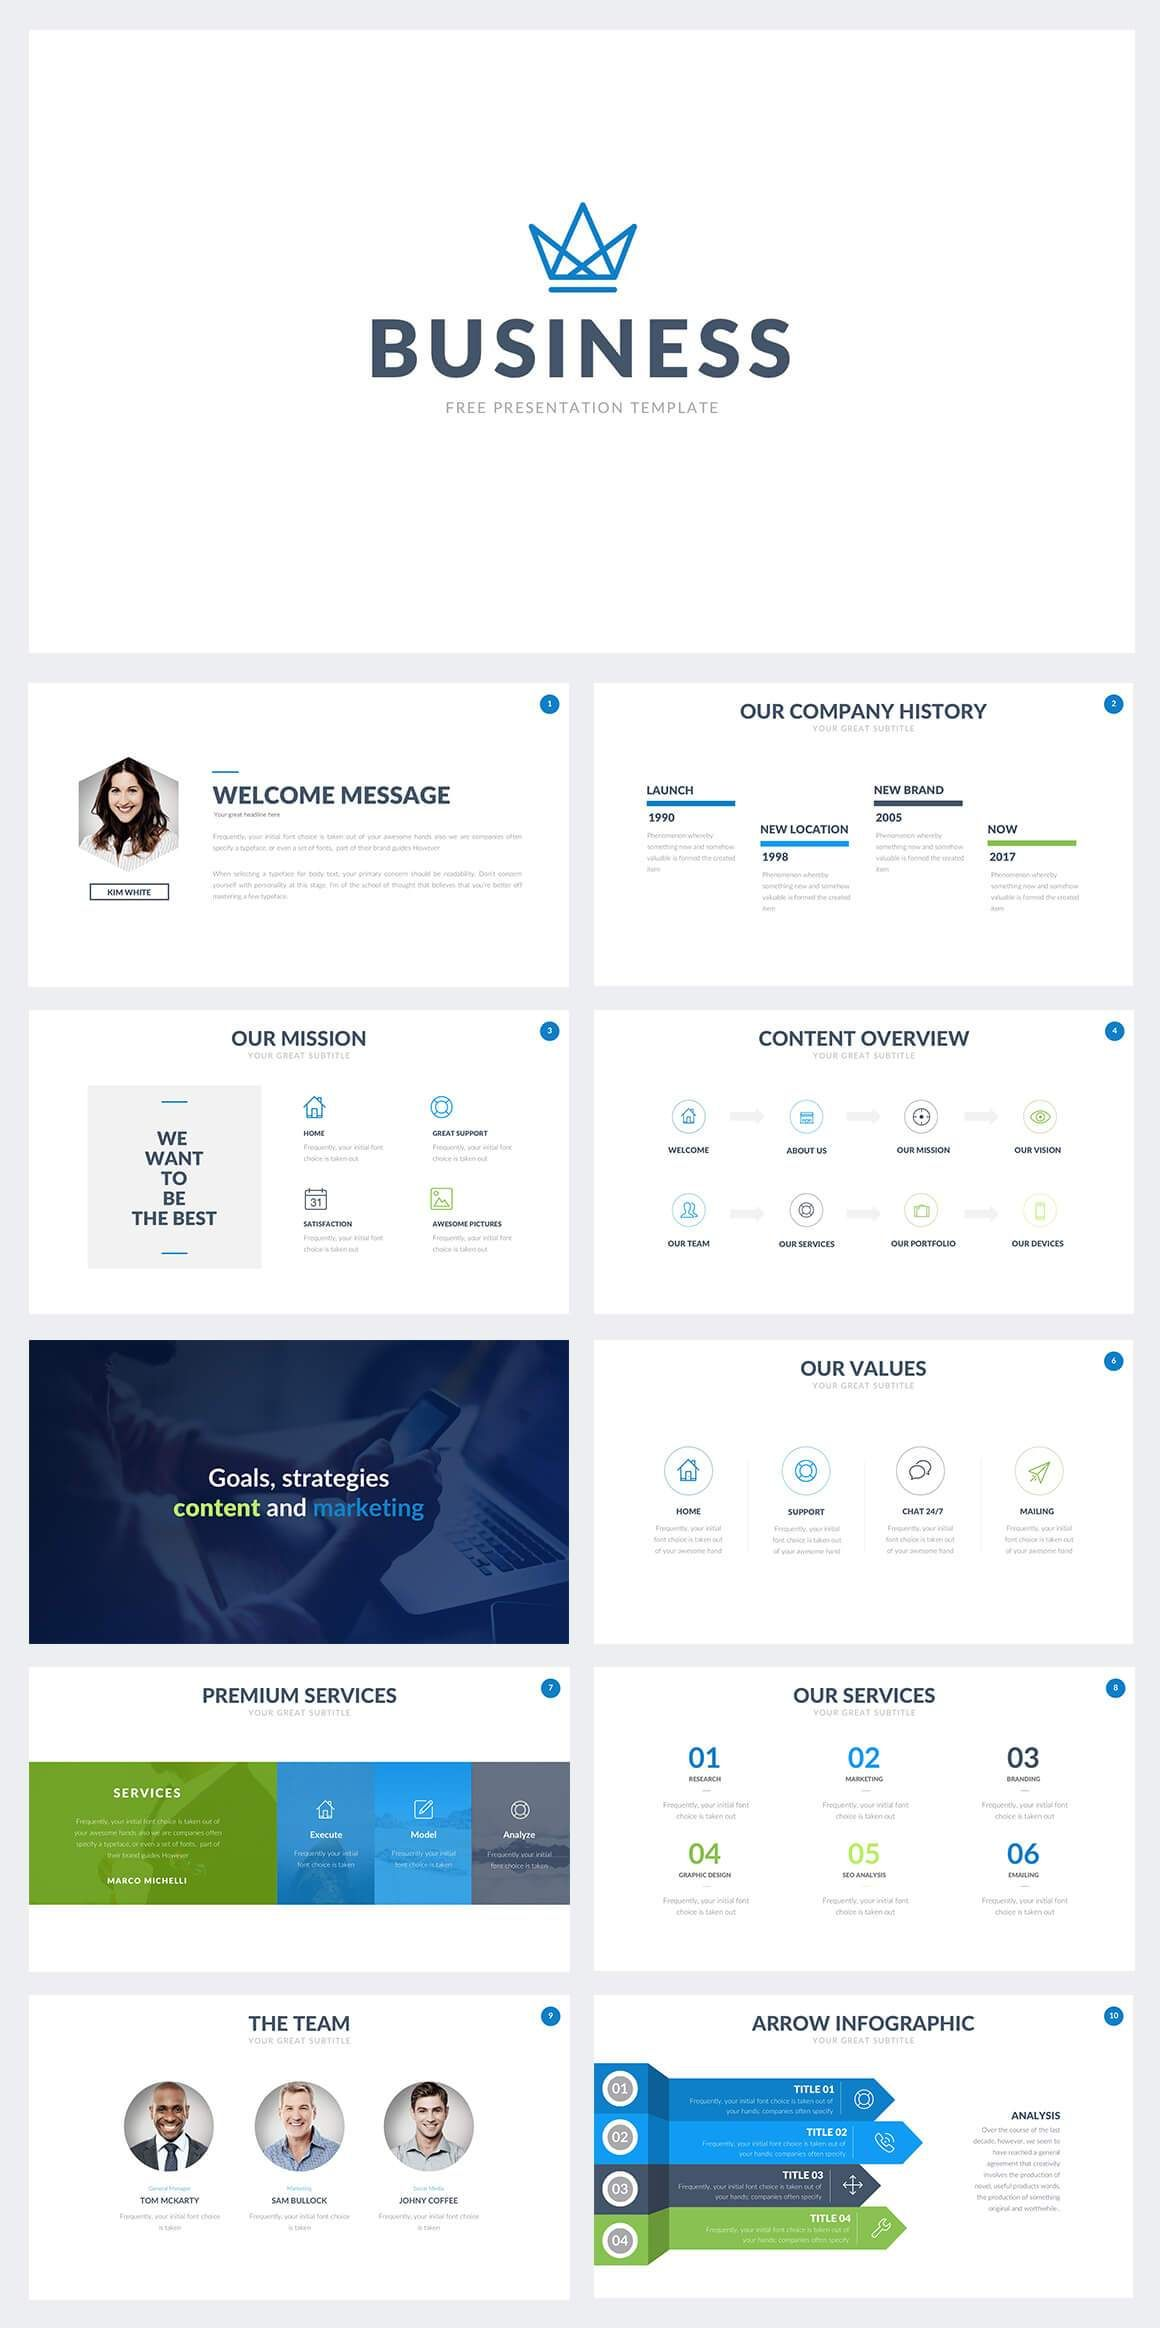 Free business powerpoint template professional powerpoint free business powerpoint template accmission Choice Image